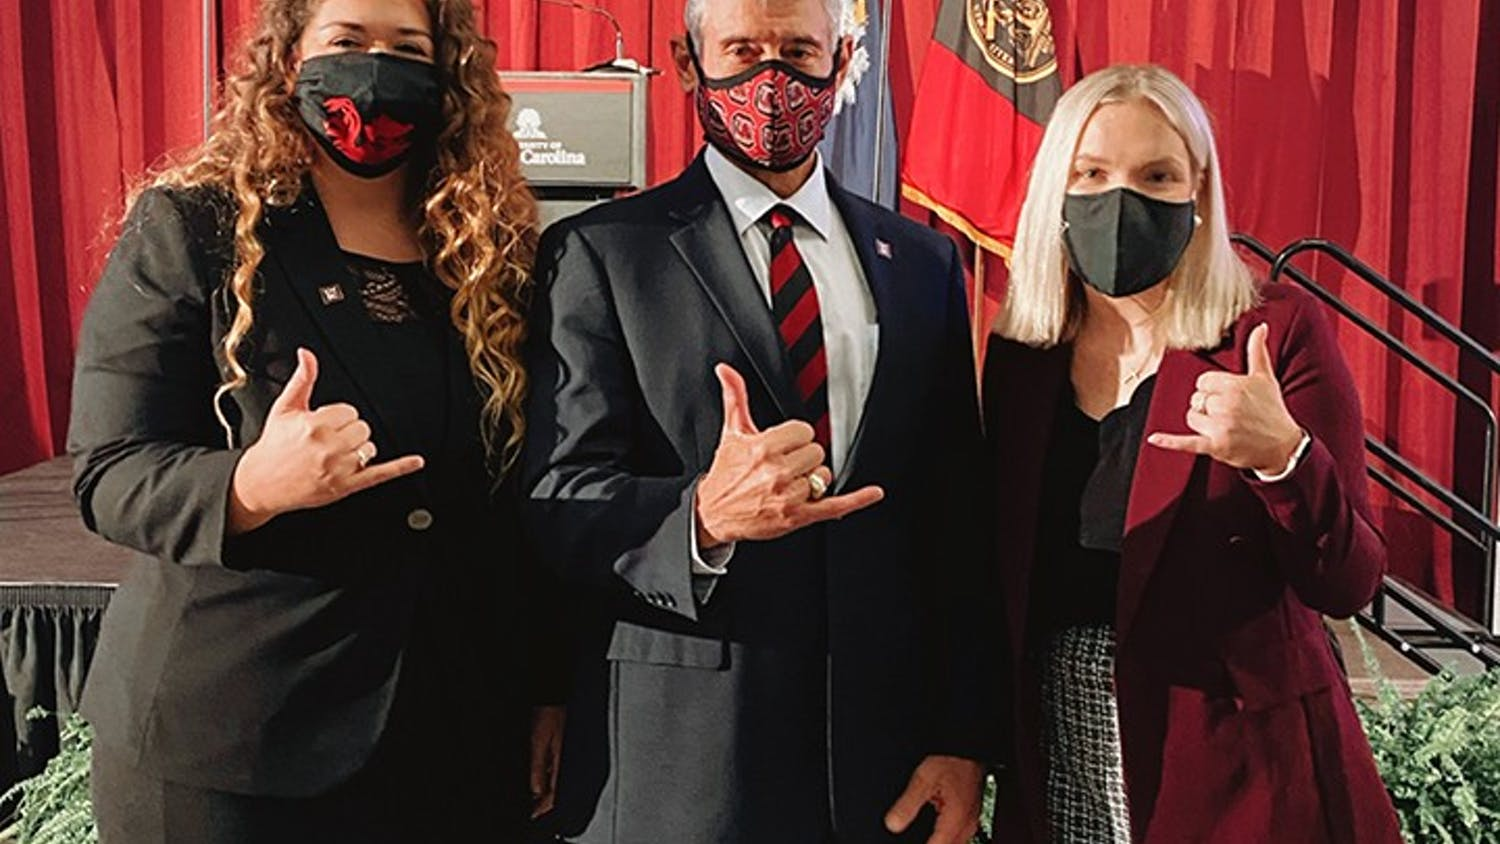 Issy Rushton, USC's student body president for the 2020-2021 school year, and Maggie Carson, president of the Graduate Student Association, stand with university President Bob Caslen.